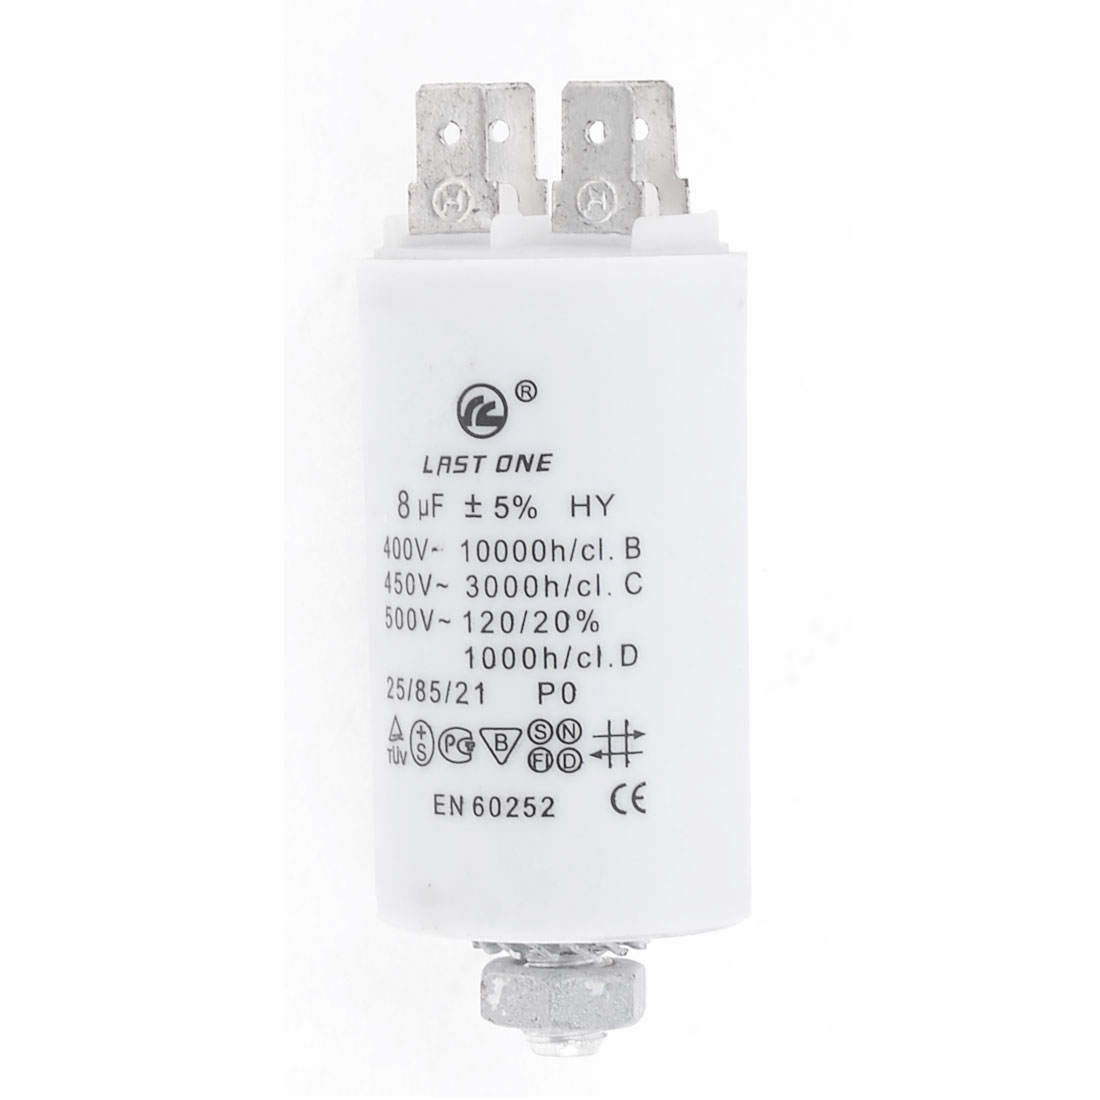 AC 450V 8uF 50/60Hz Washing Machine CBB60 Nonpolar Motor Running Capacitor